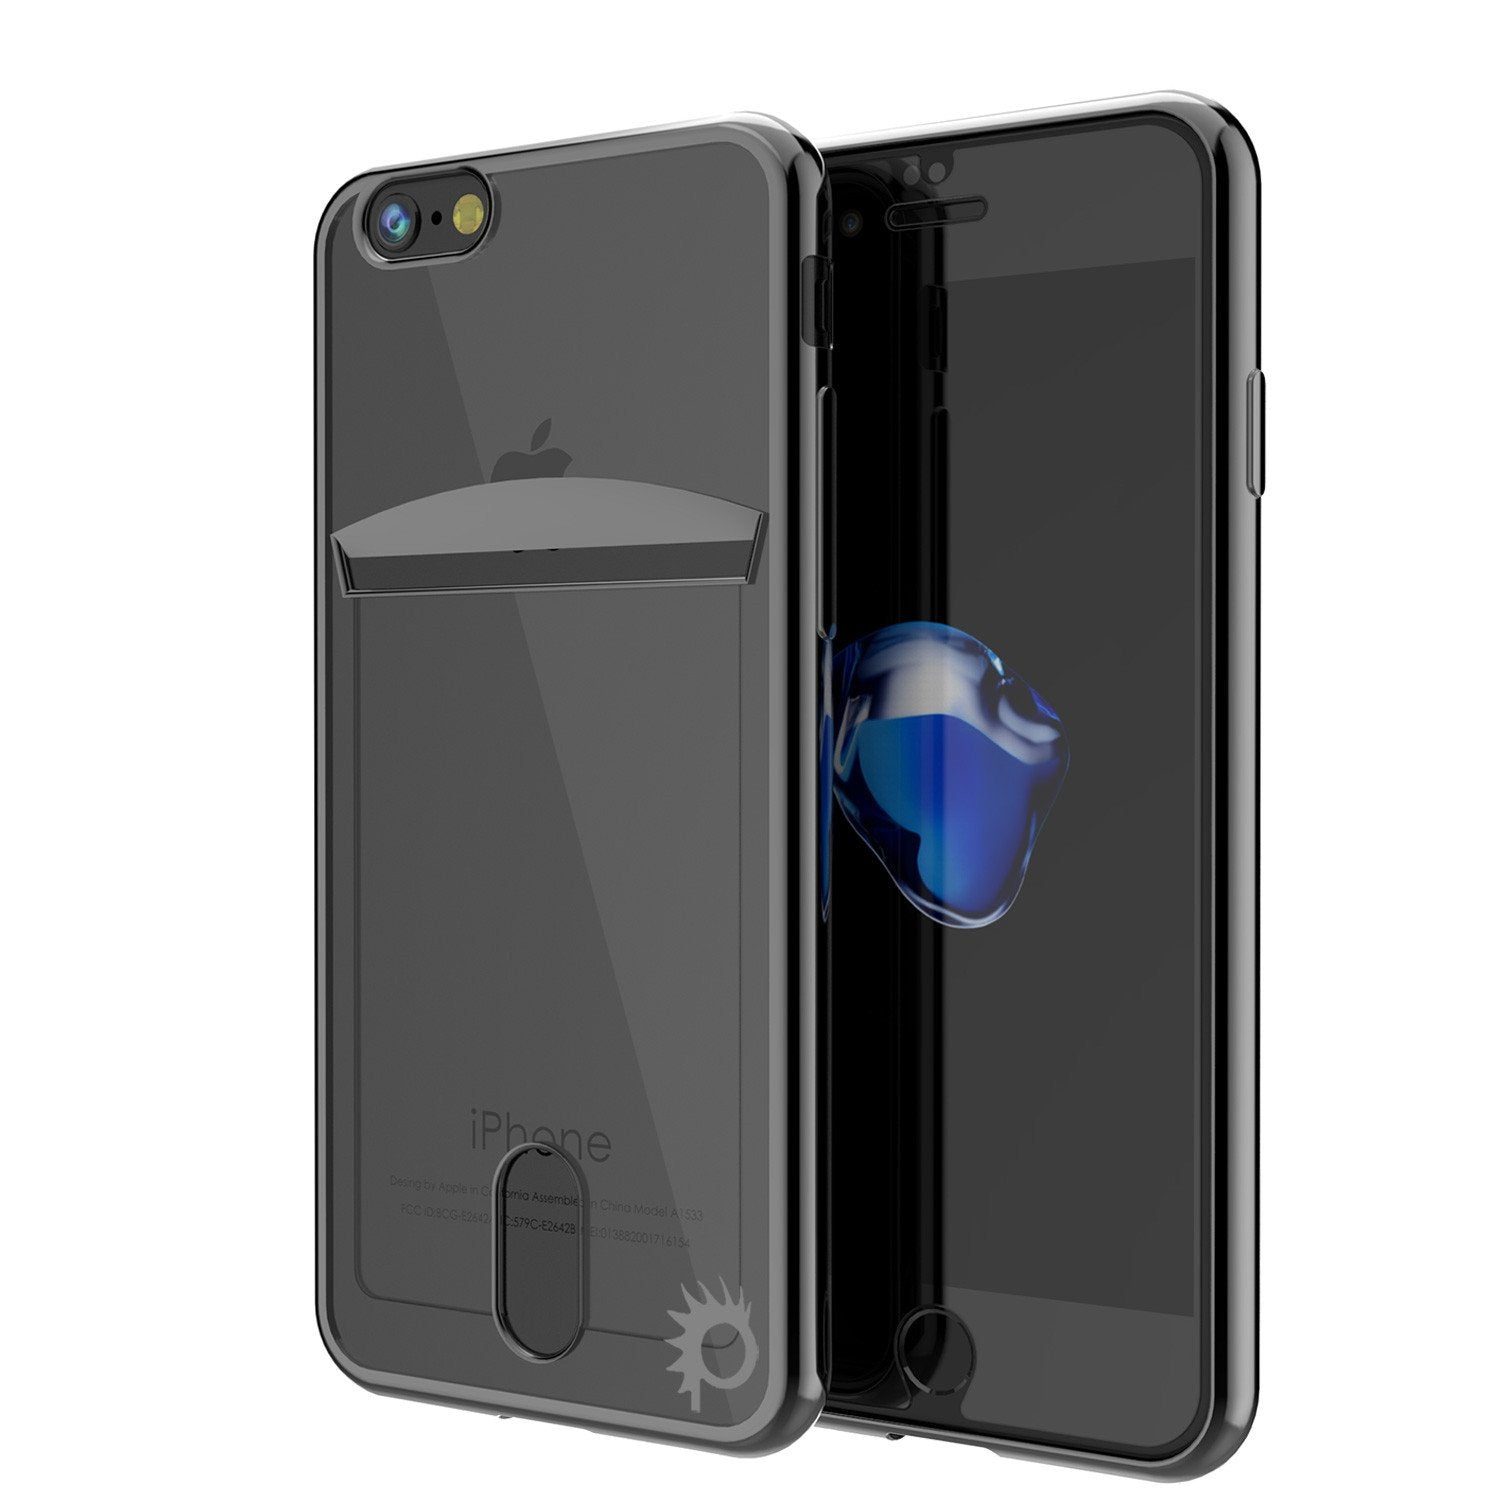 iPhone 7+ Plus Case, PUNKCASE® LUCID Black Series | Card Slot | SHIELD Screen Protector | Ultra fit